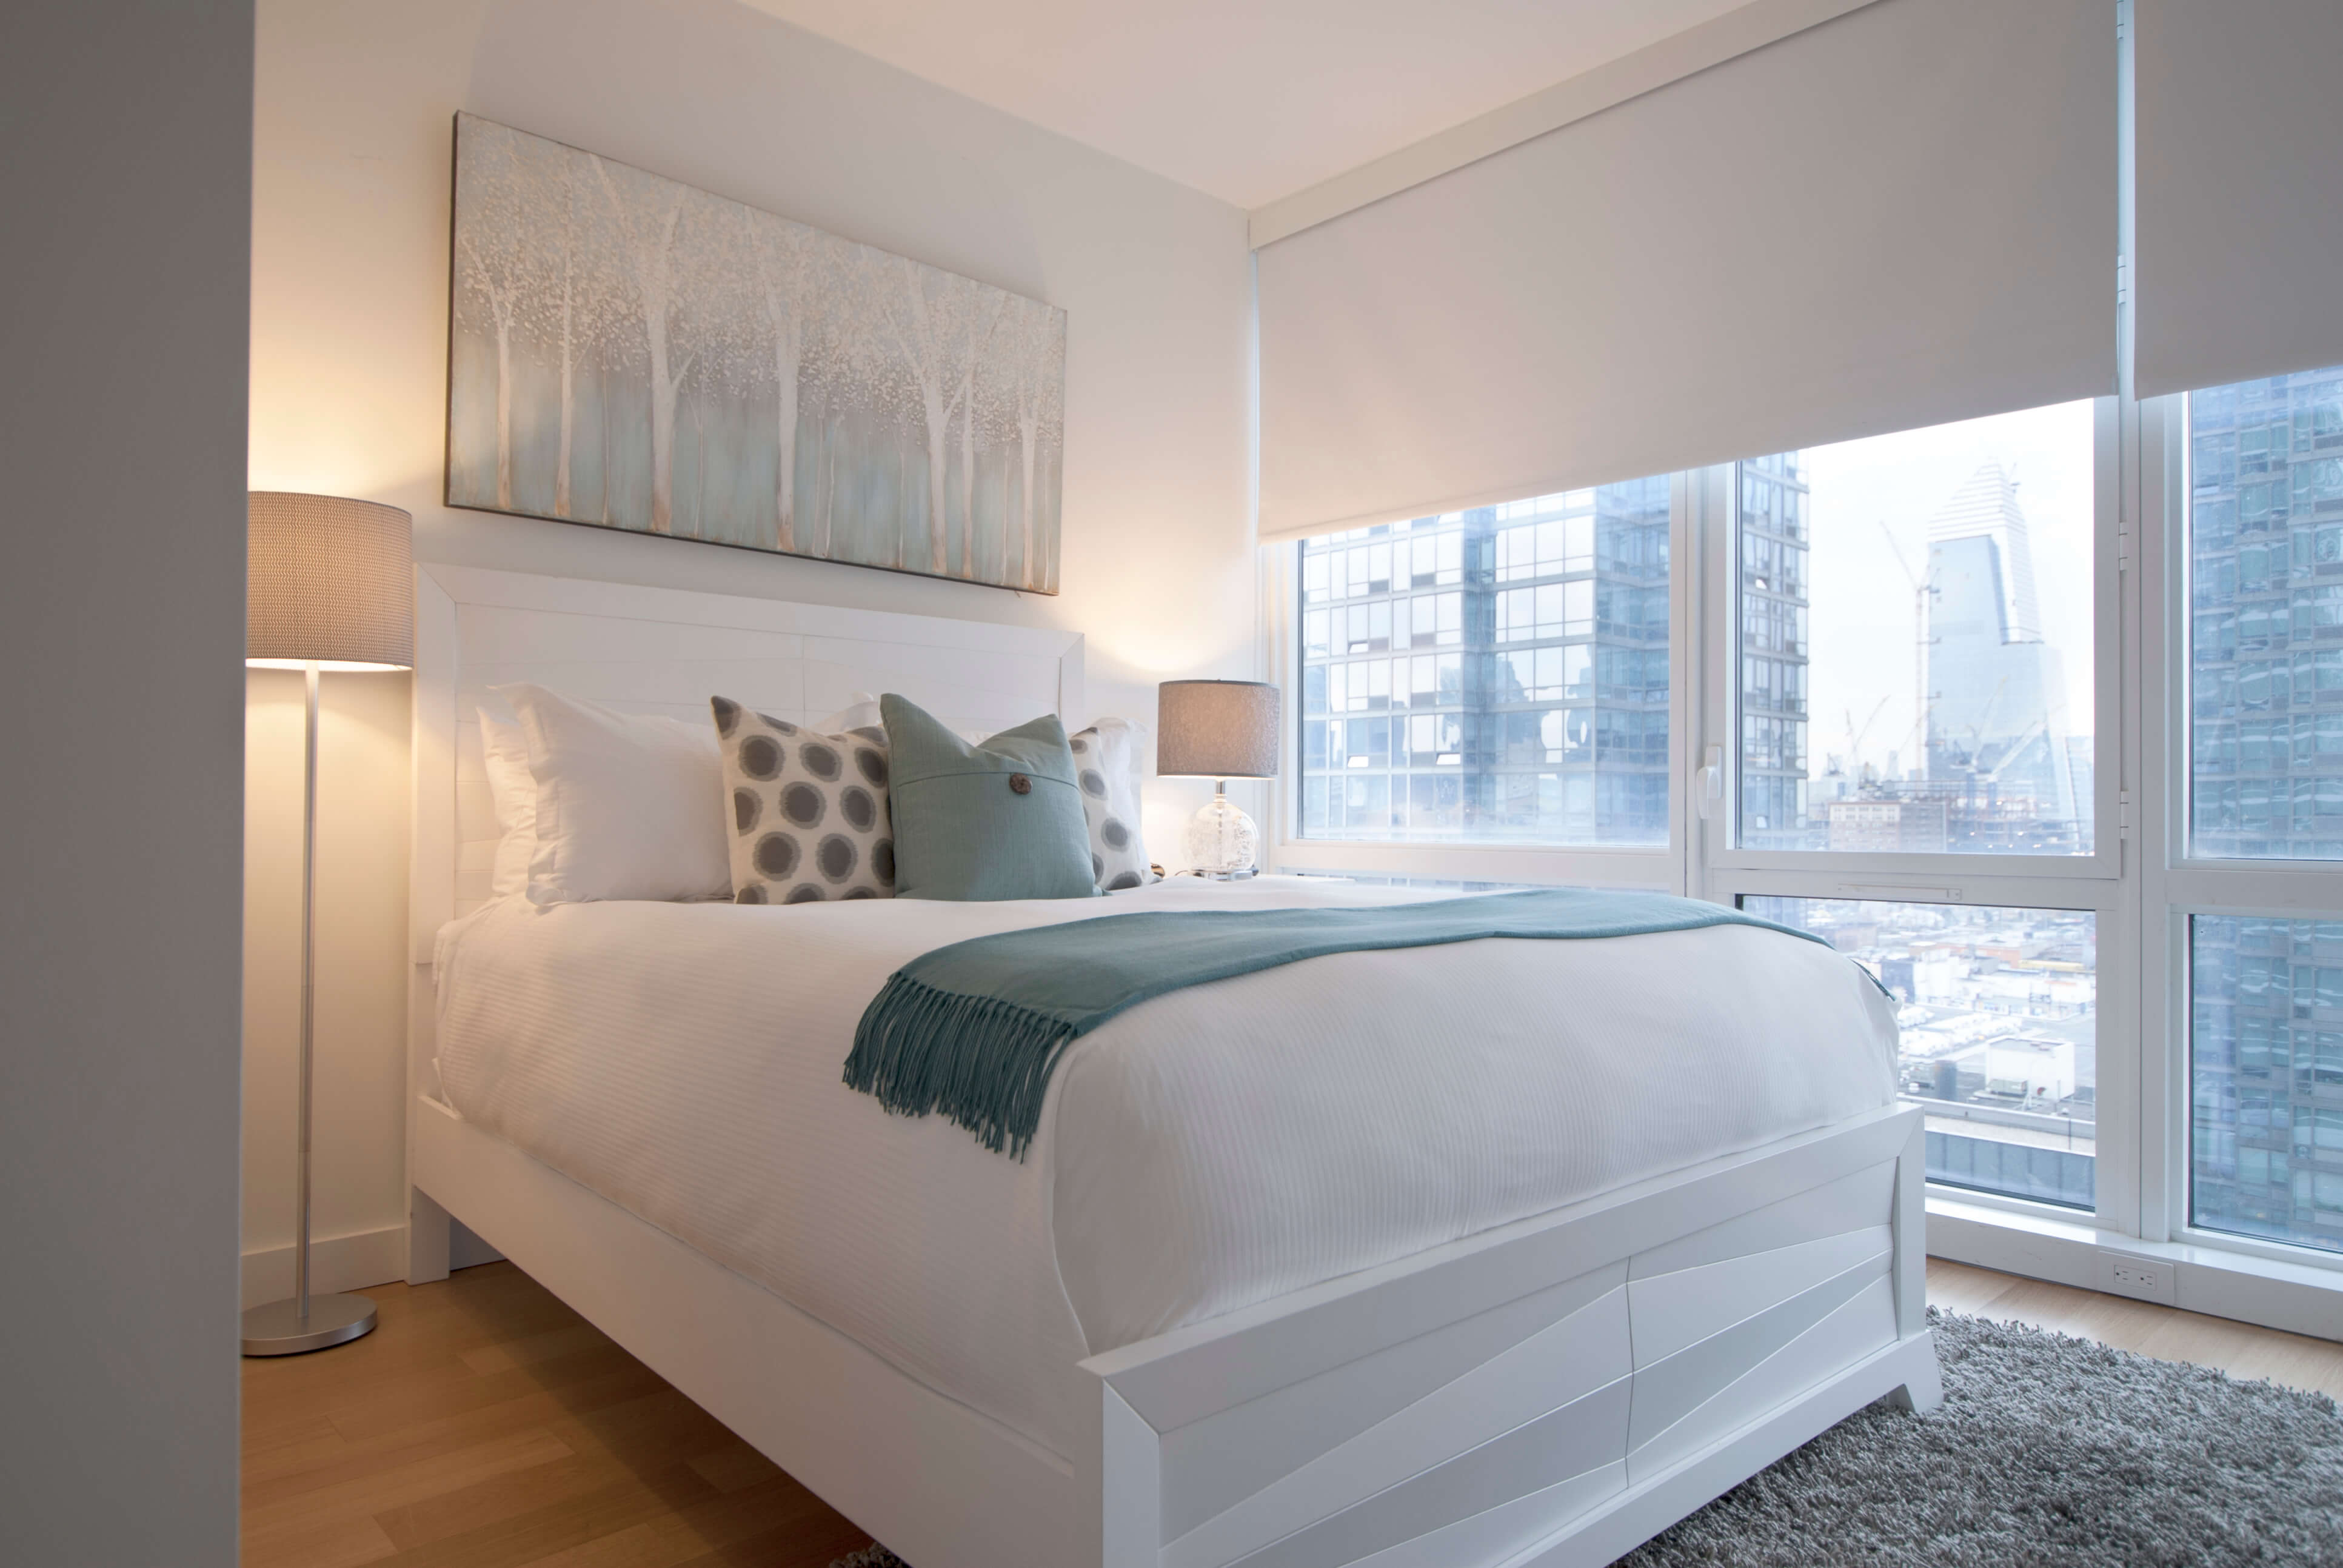 image 2 furnished 1 bedroom Apartment for rent in Midtown-West, Manhattan